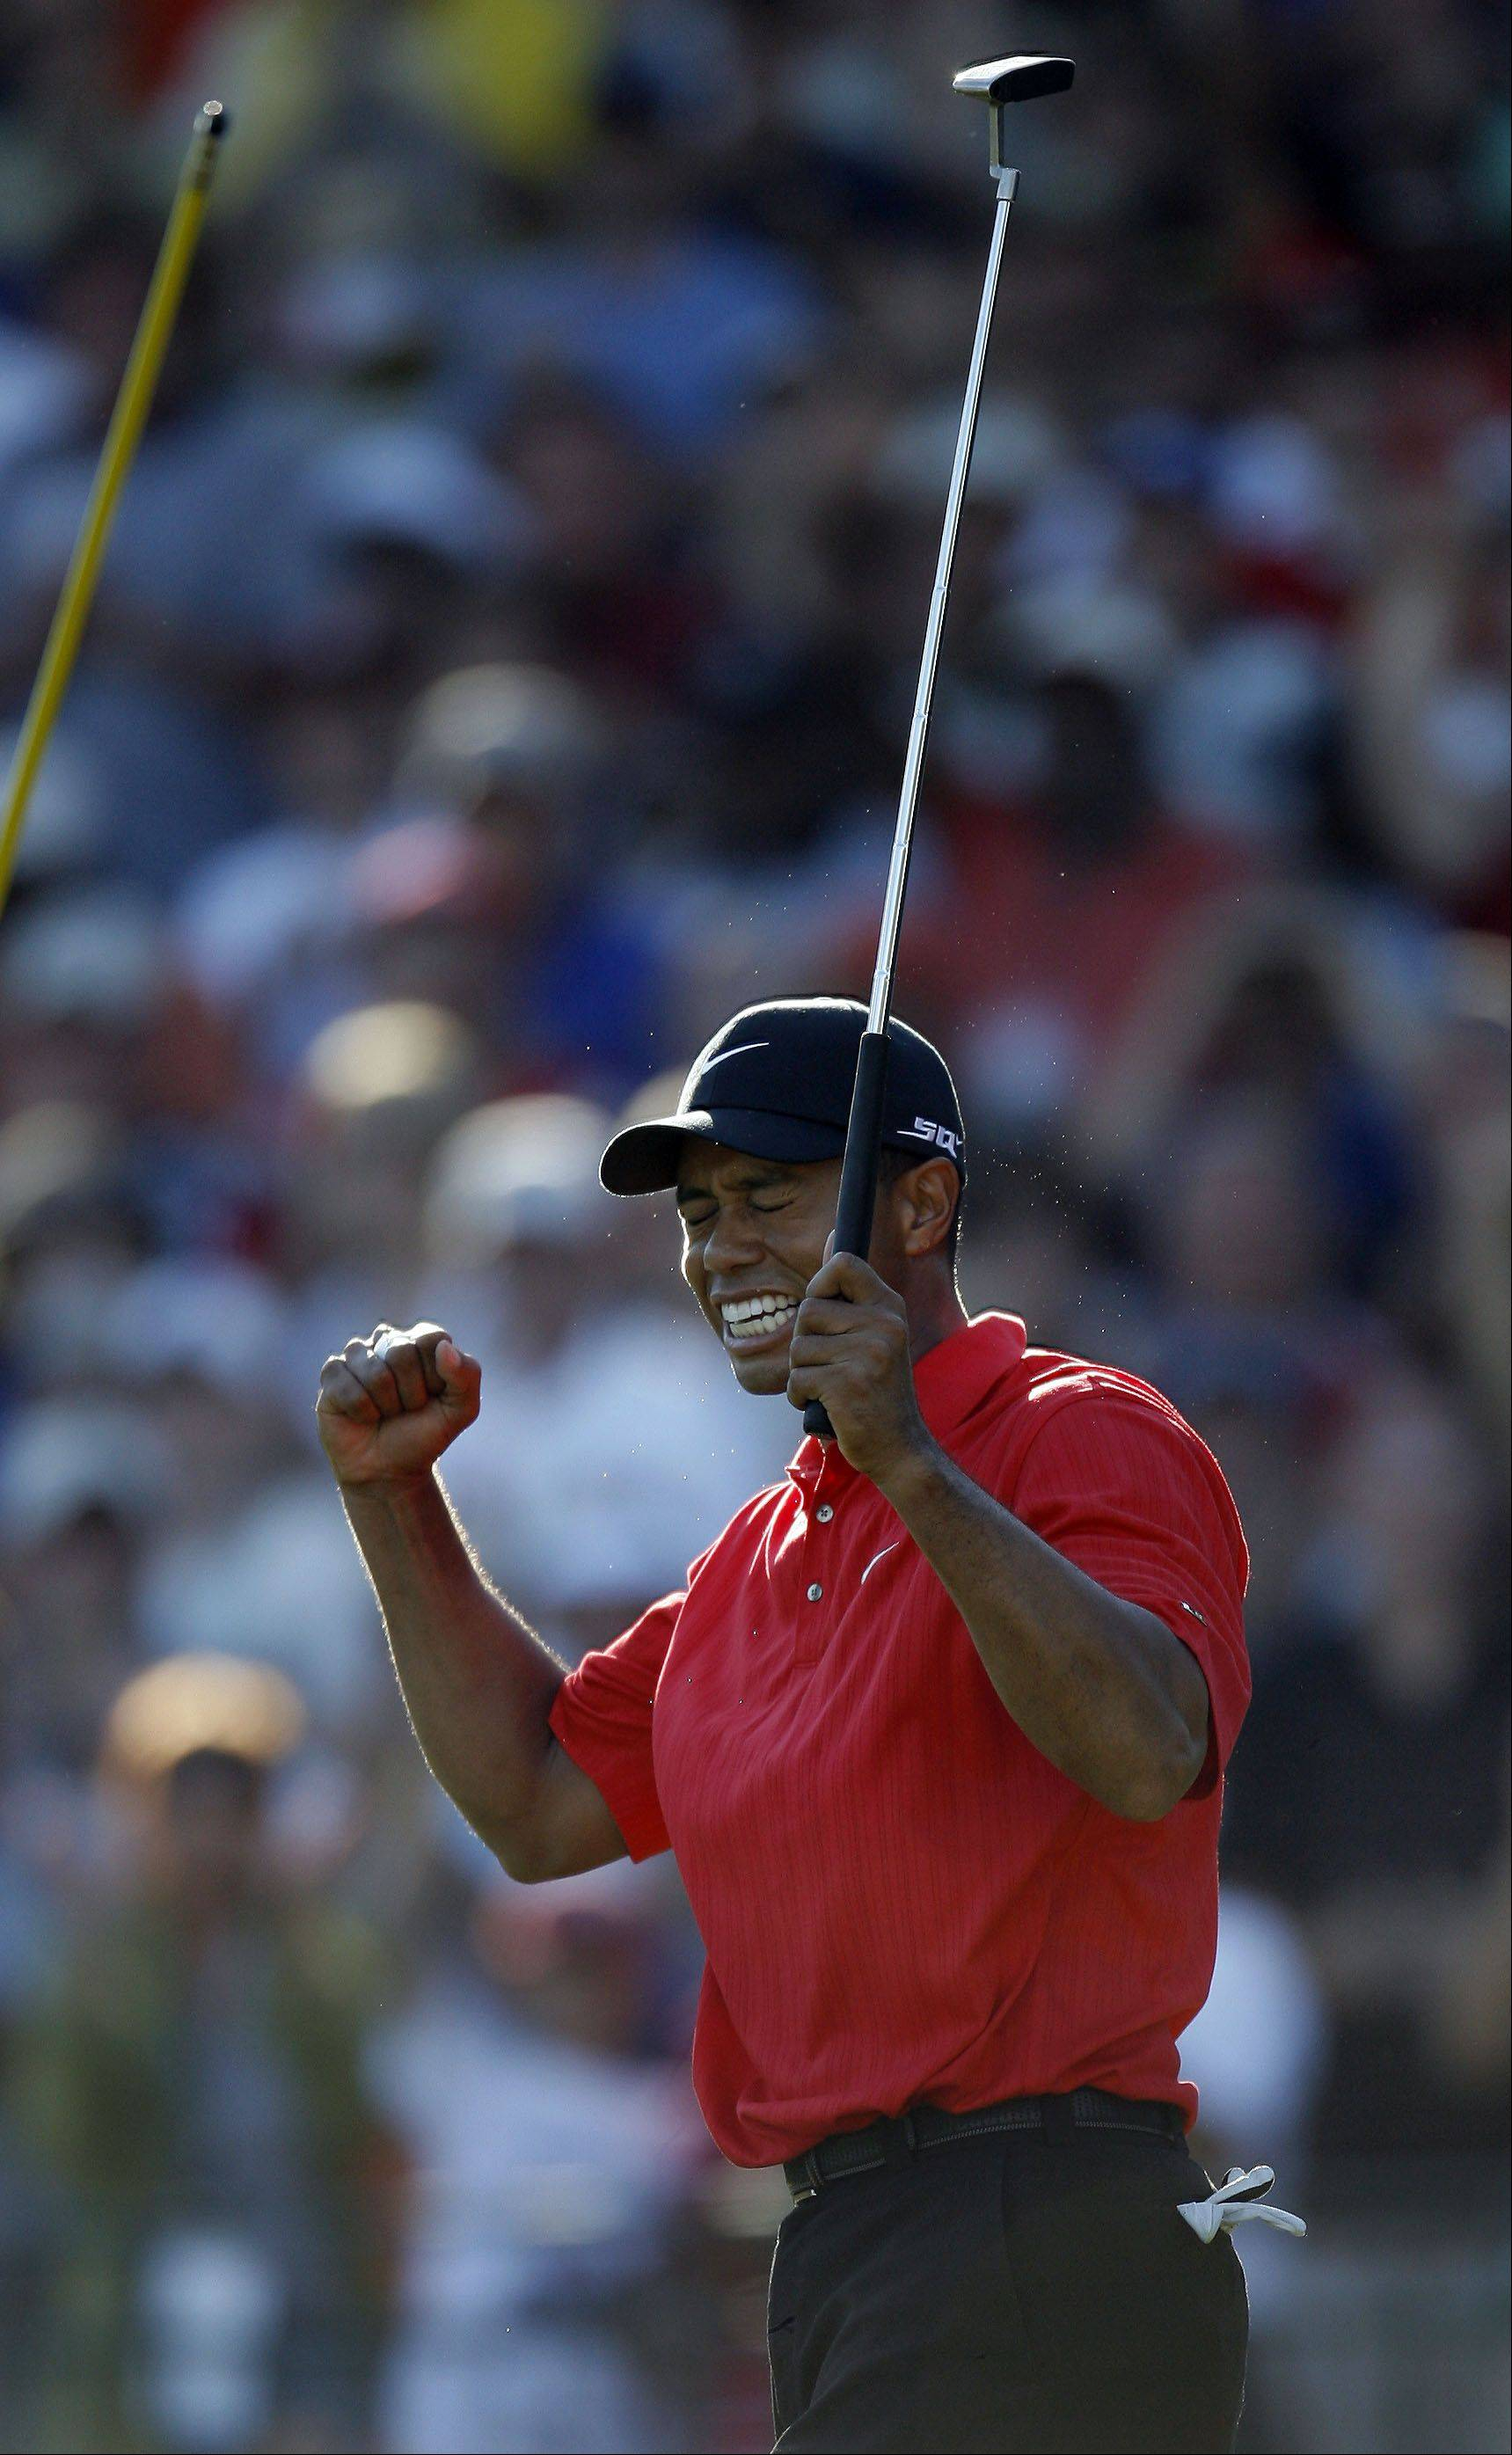 Round four of the 88th PGA Championship Sunday, August 20, 2006 at Medinah Country Club in Medinah. Tiger Woods reacts after sinking his last putt on 18 to win.